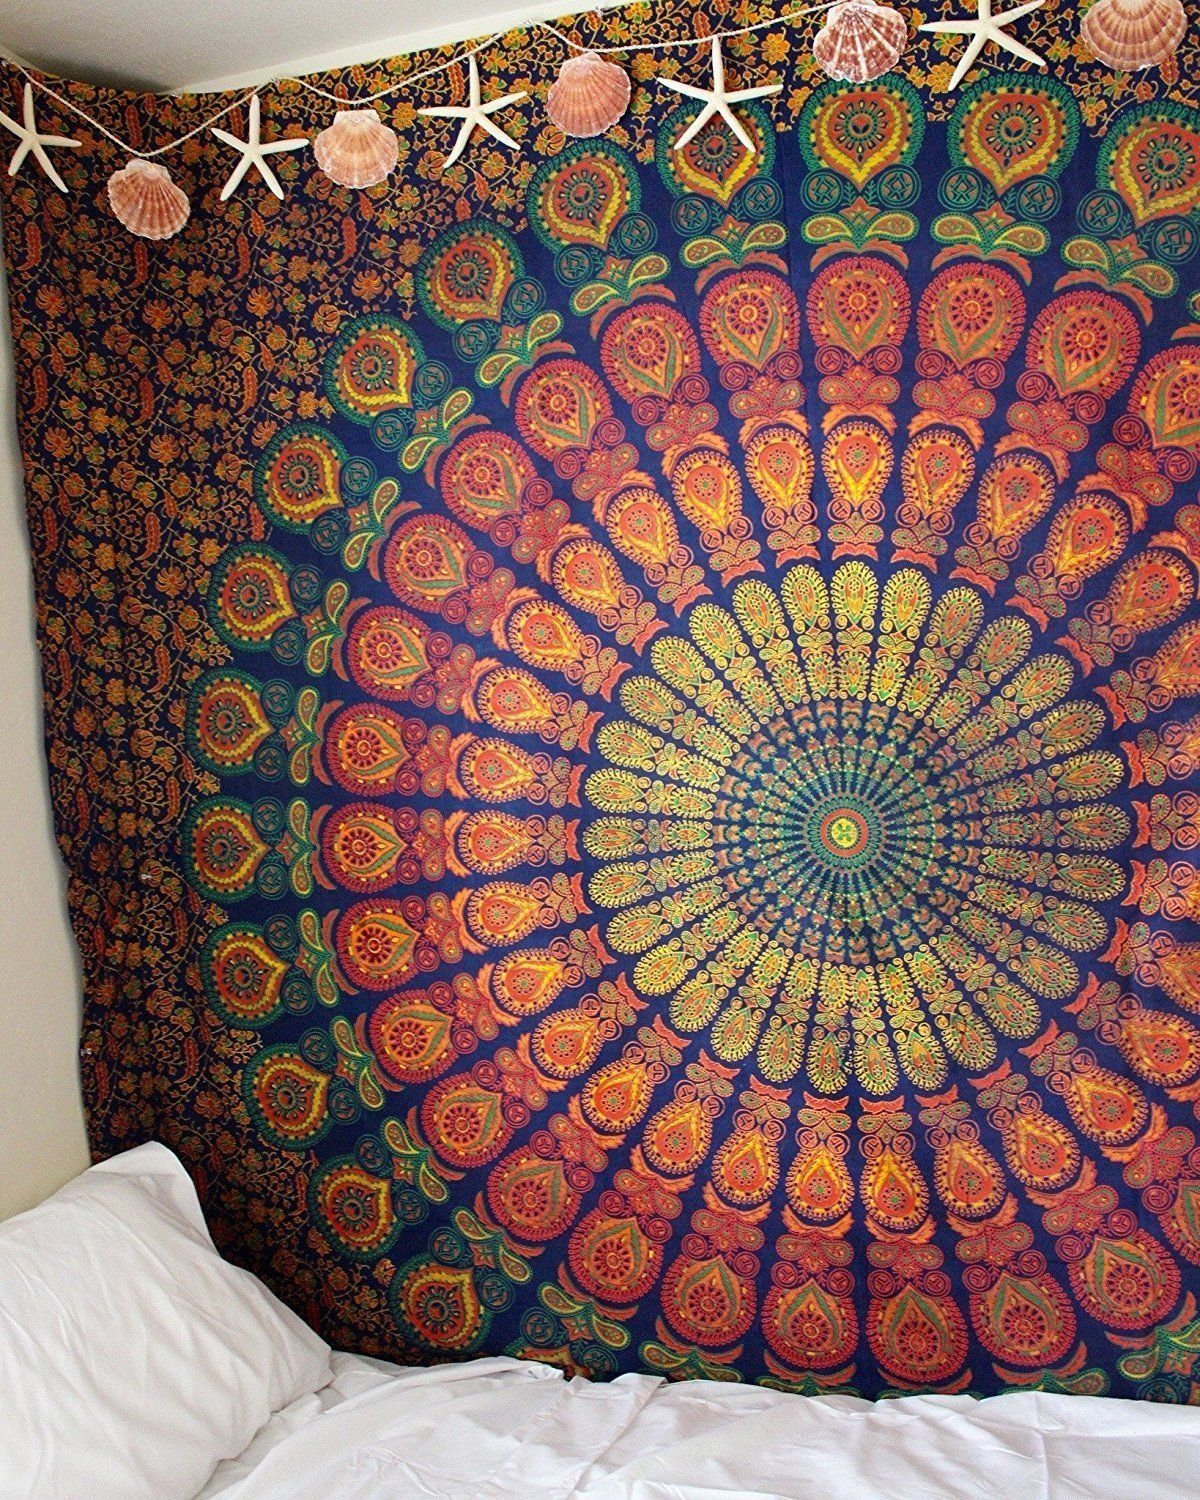 Blue & Yellow Hippie Medallion Mandala Boho Tapestry Wall Hanging Pertaining To Most Popular Blended Fabric In His Tapestries And Wall Hangings (View 16 of 20)